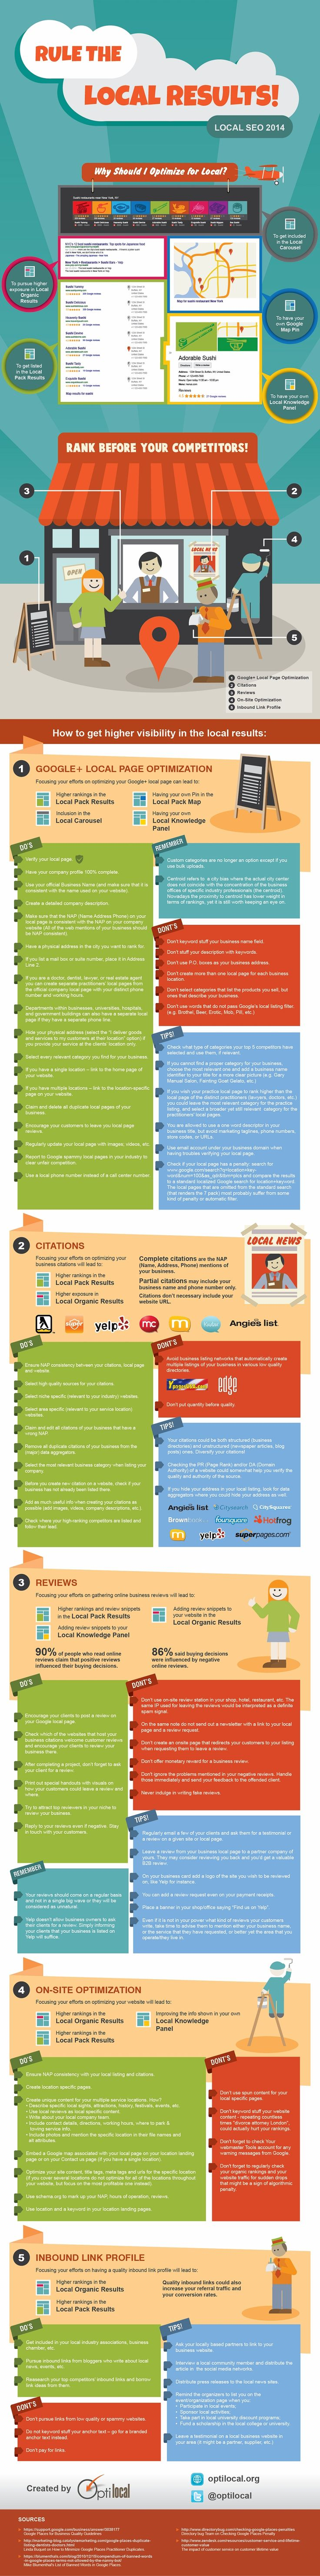 Search Engine Marketing - How to Rule Local Results in SEO [Infographic] : MarketingProfs Article